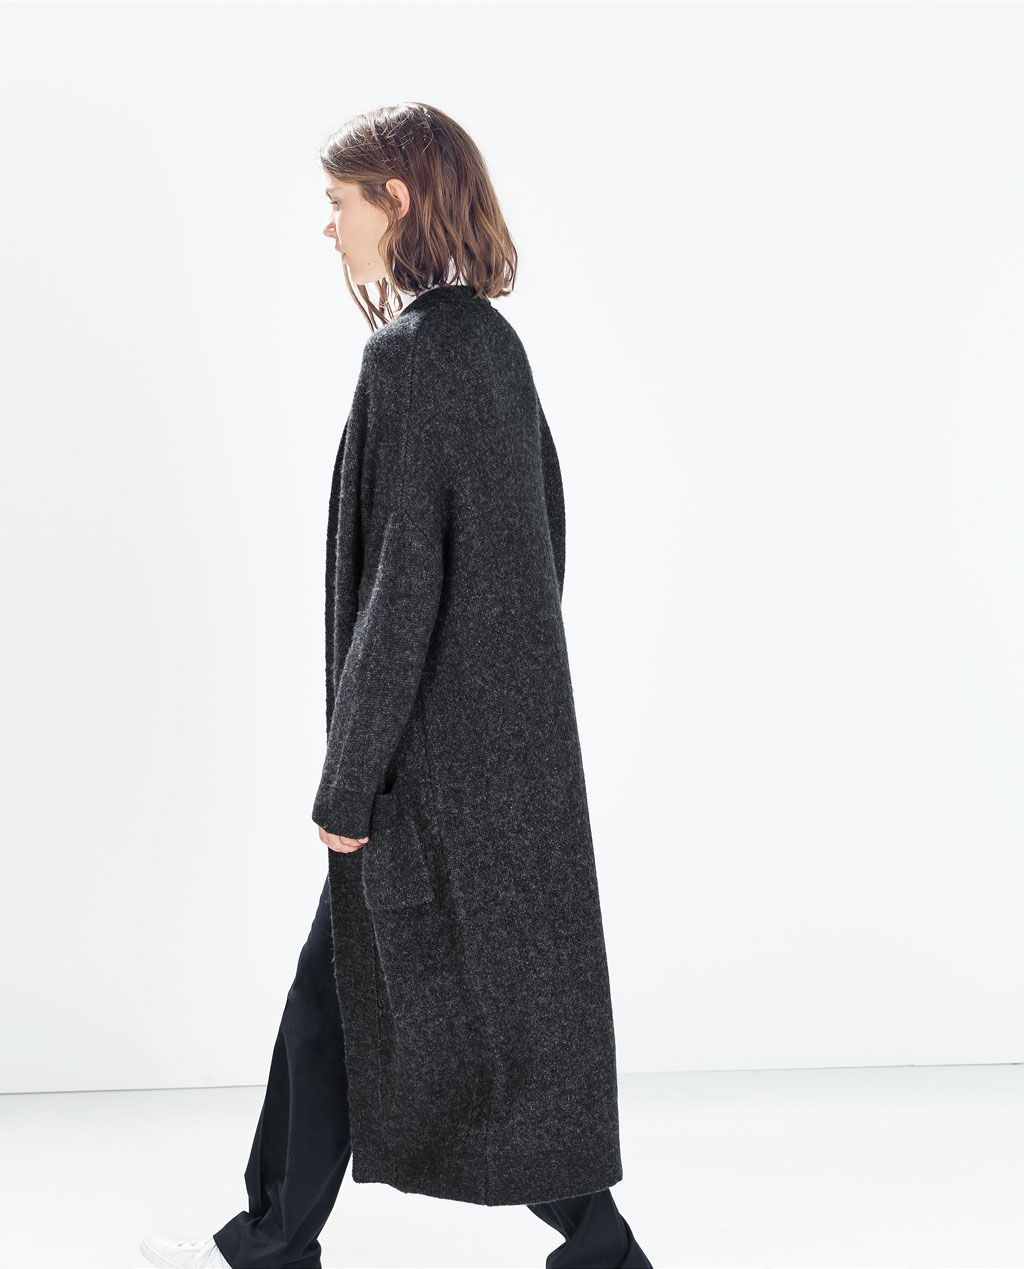 ZARA - NEW THIS WEEK - EXTRA-LONG CARDIGAN WITH POCKETS | Shopping ...